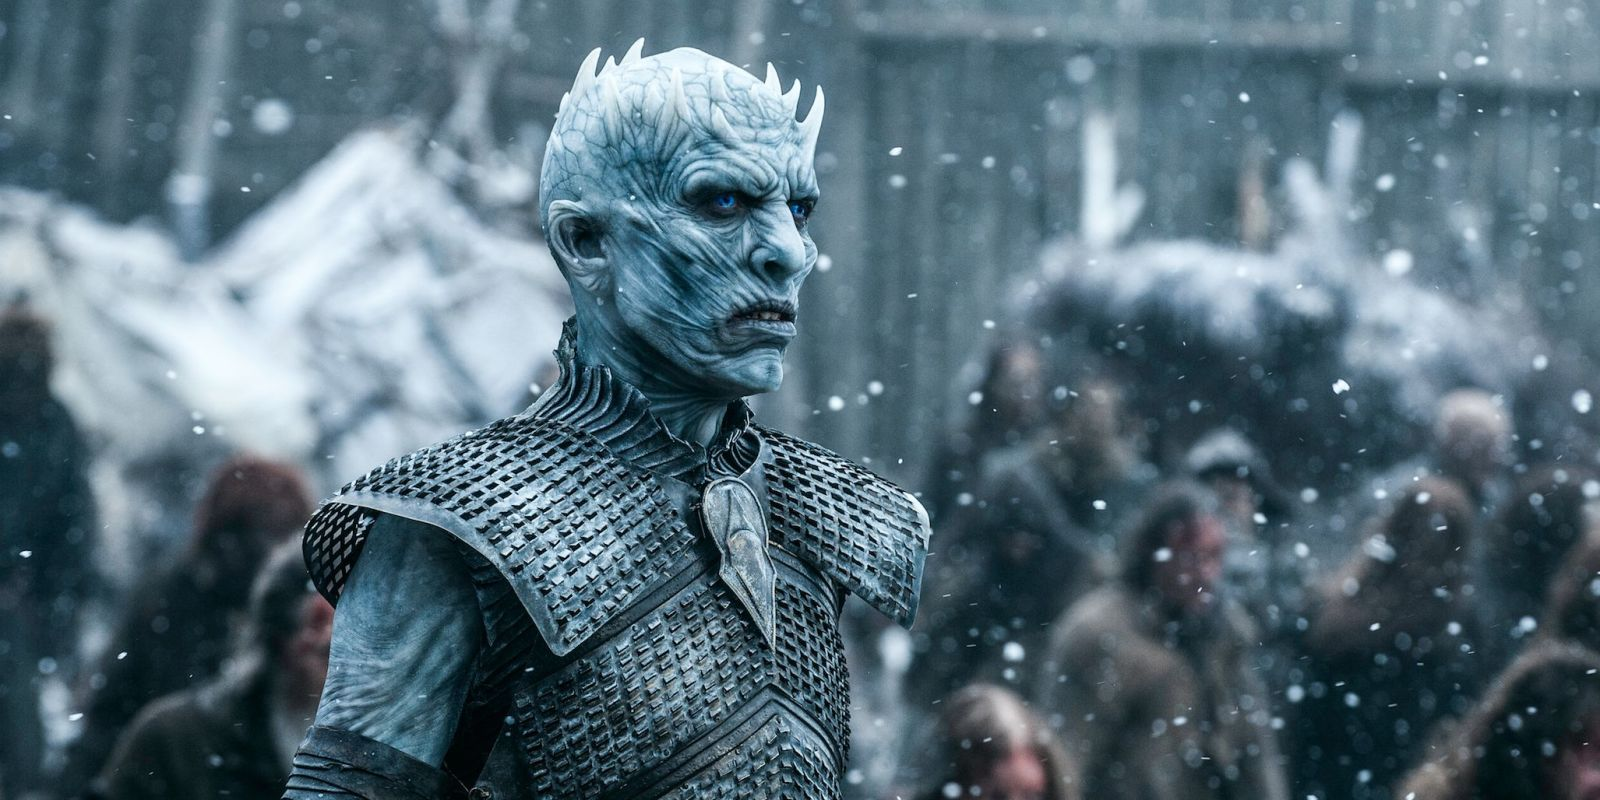 Game Of Thrones: Winter Is Finally Here